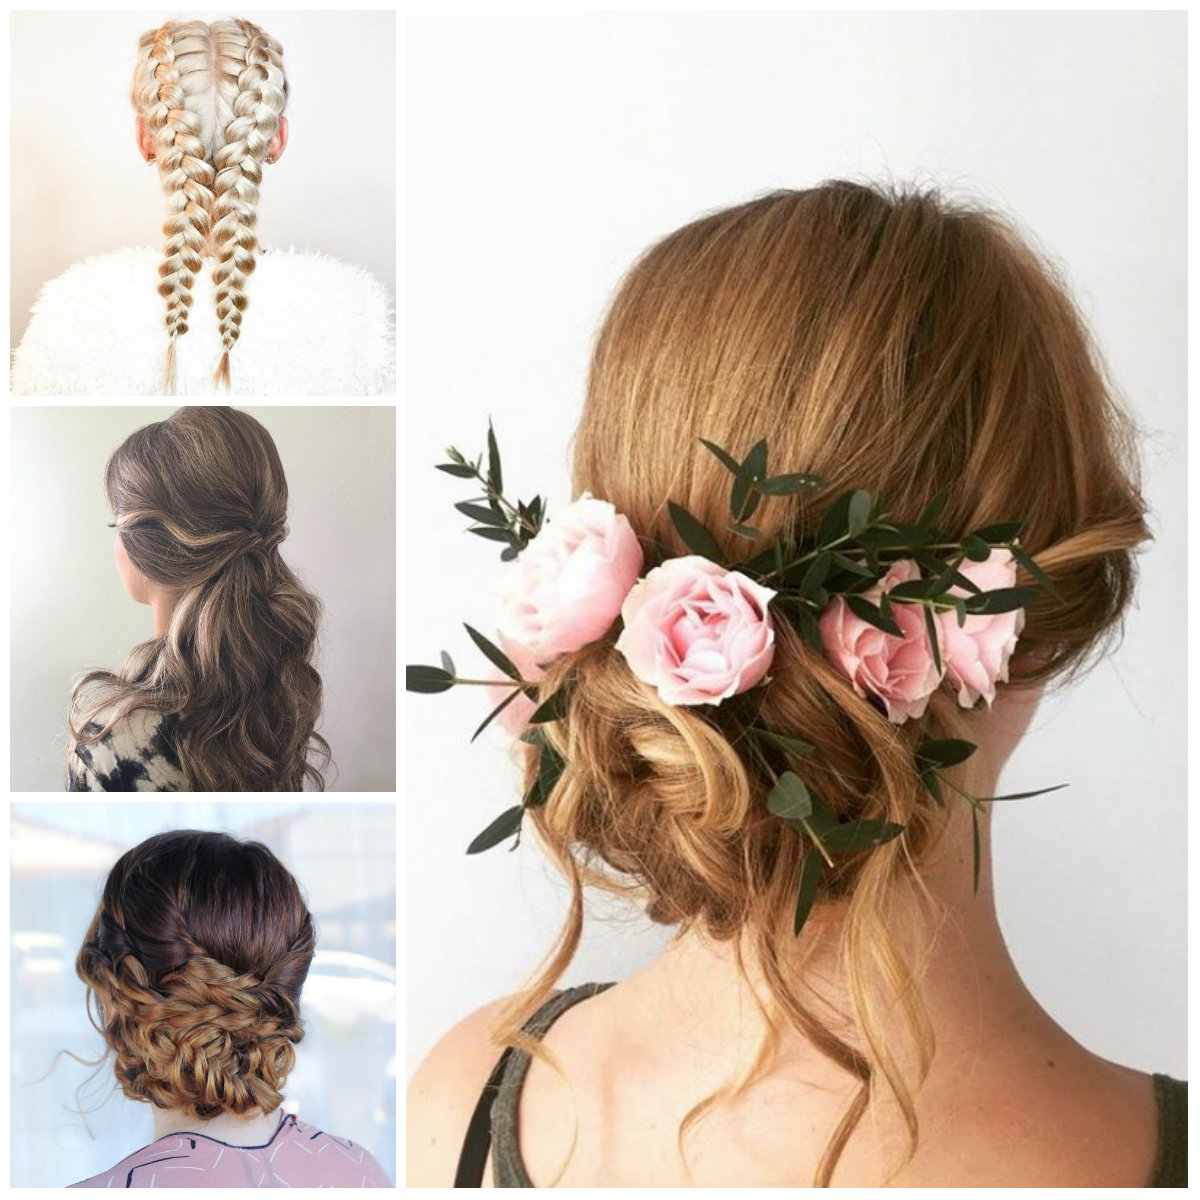 Prom Hairstyles | 2019 Haircuts, Hairstyles and Hair Colors